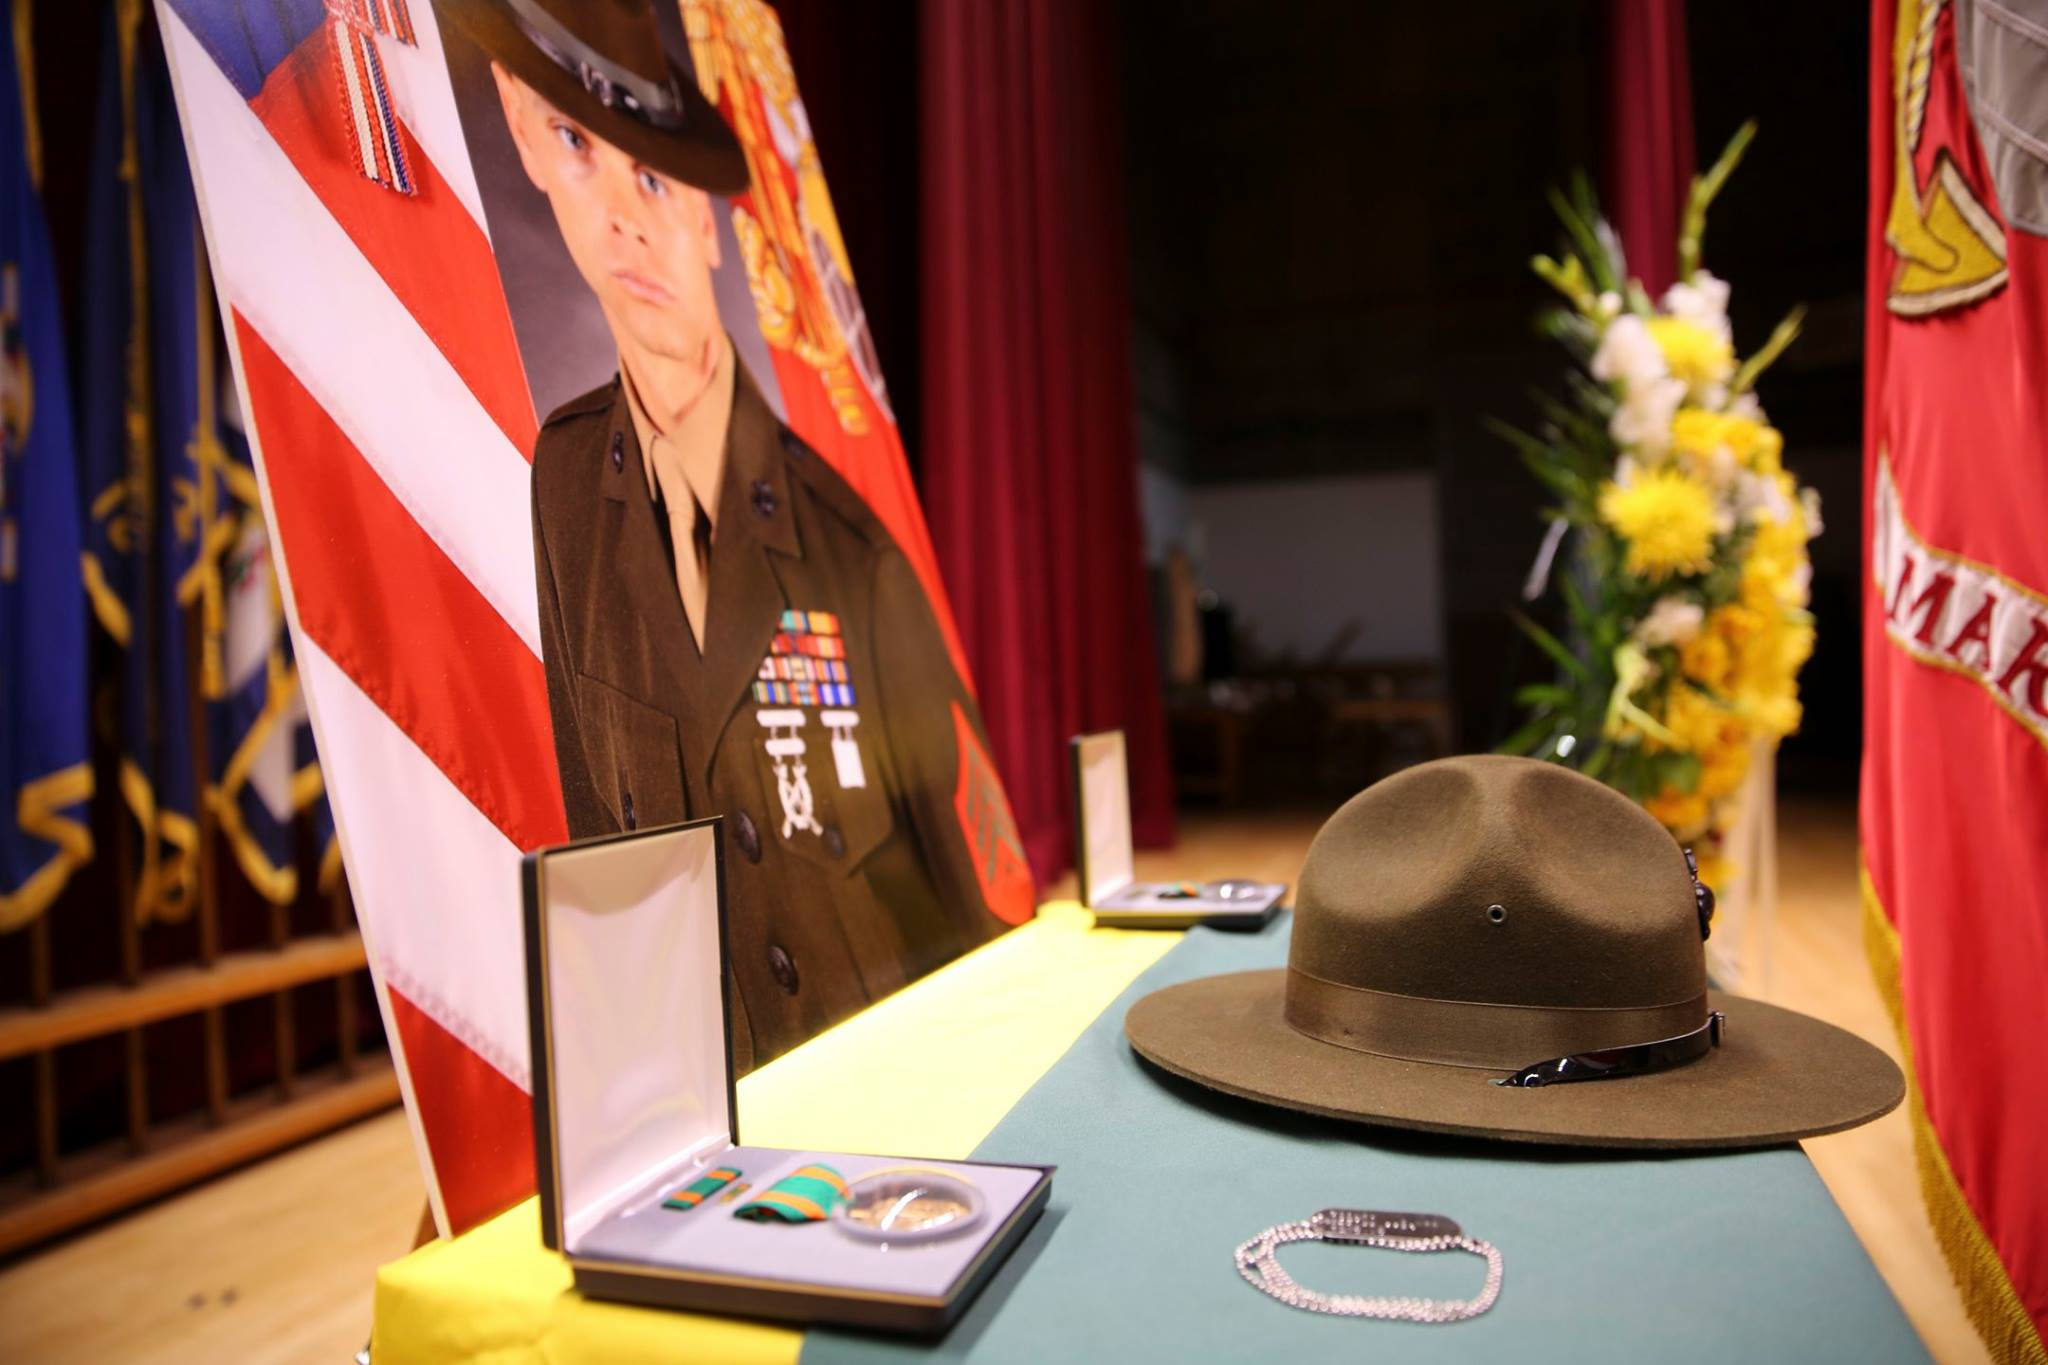 Sergeant Michael A. Tooley Memorial Service